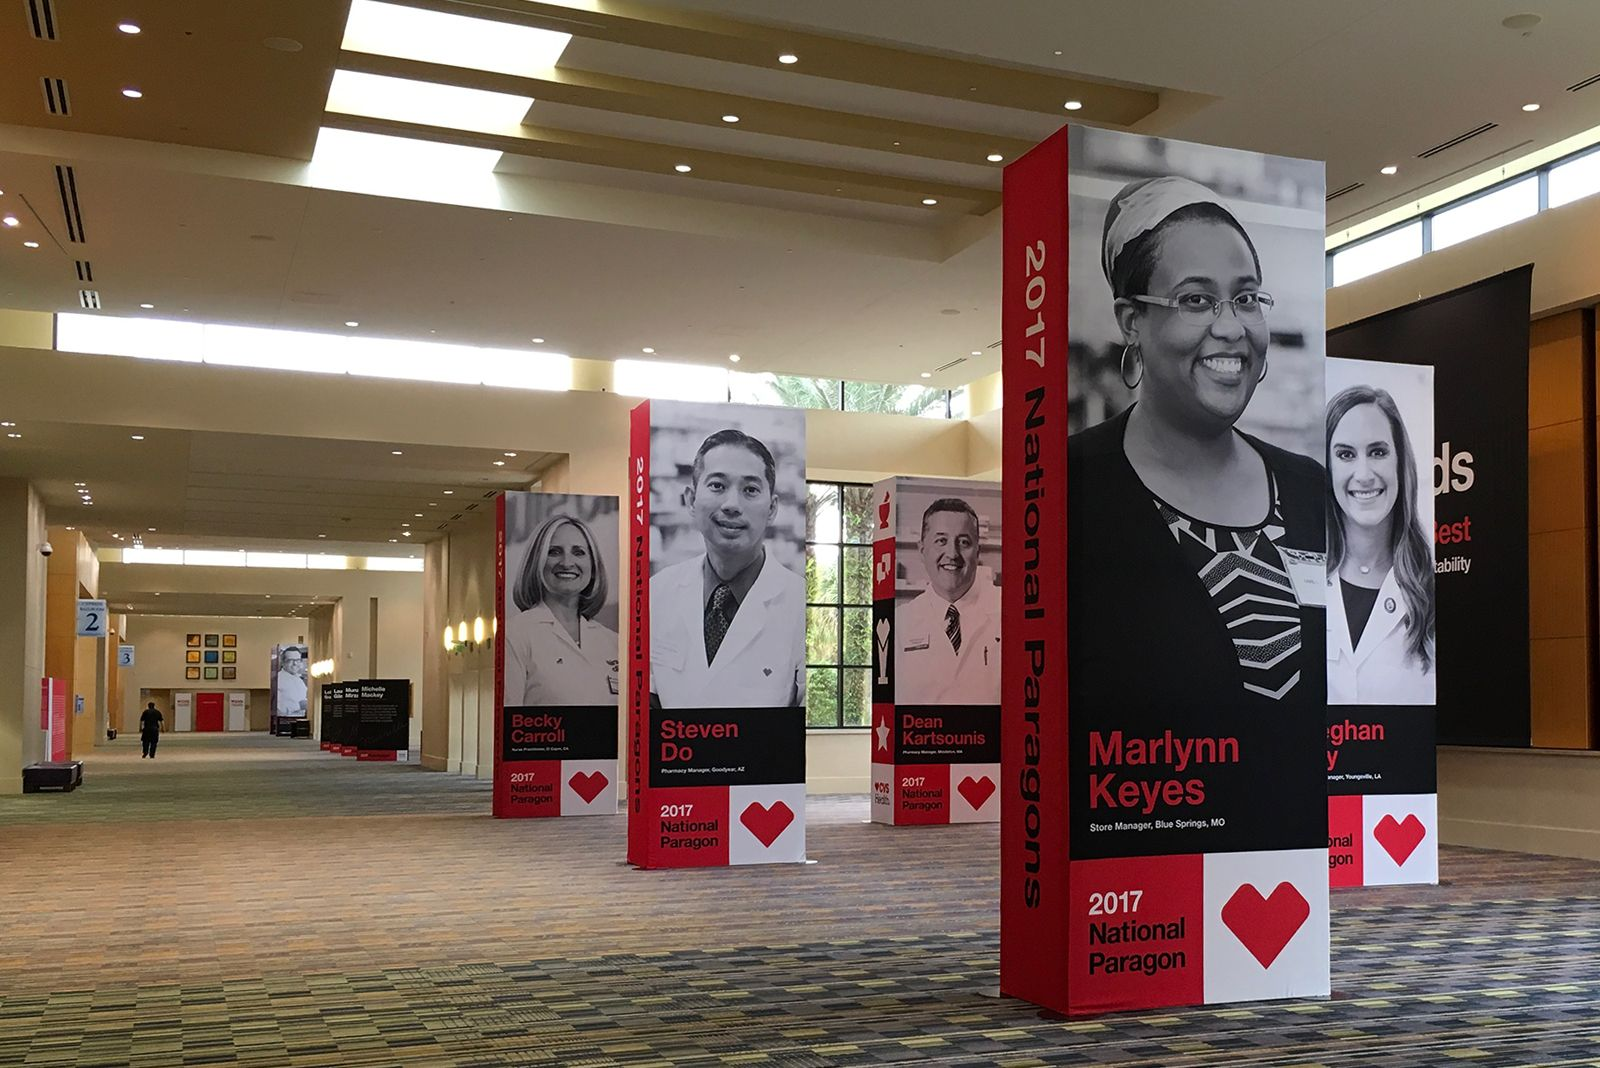 large scale banners of CVS Health personnel during retail leadership conference